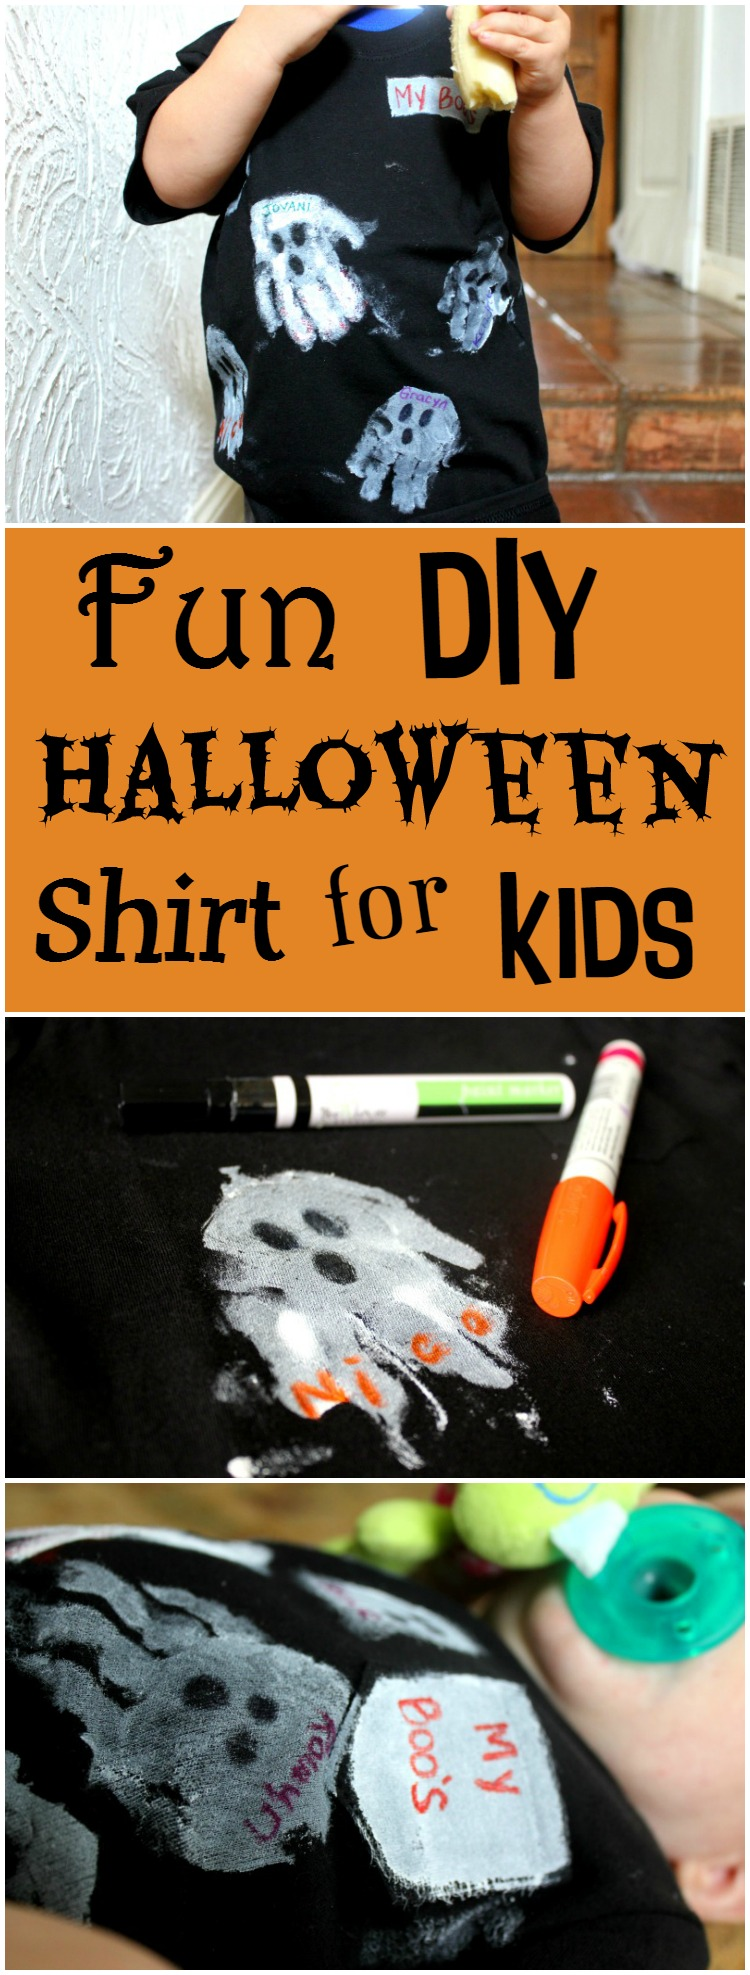 A fun Halloween shirt for kids to make with friends